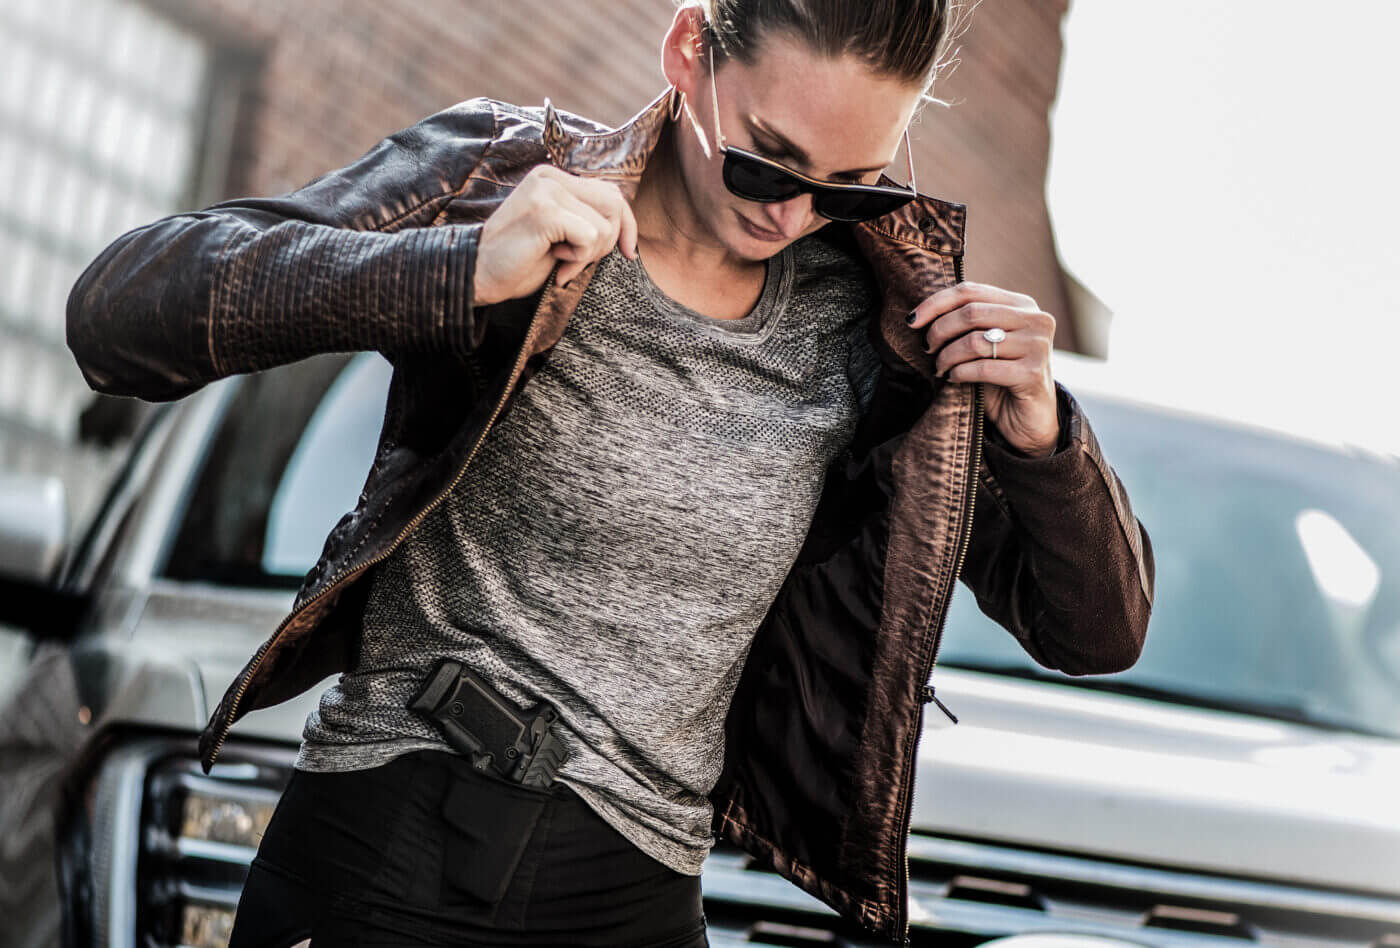 Woman putting on jacket with gun in waistband holster